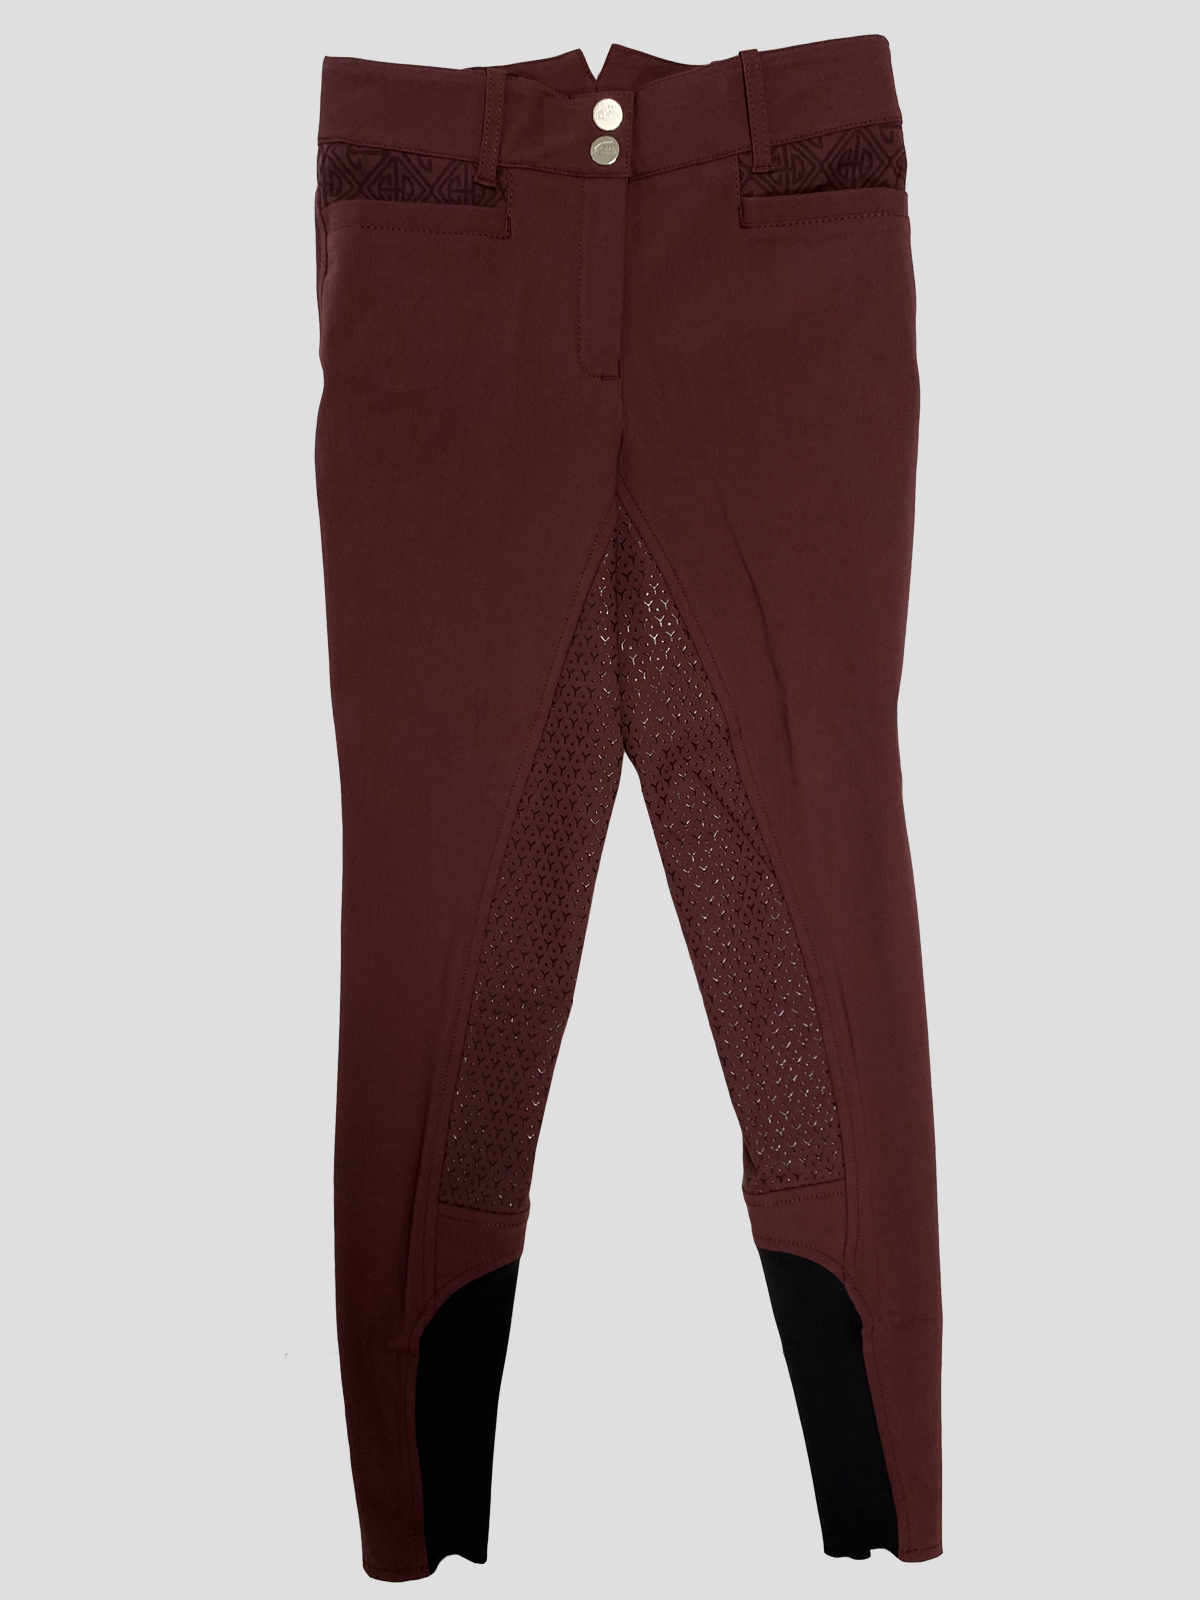 ESASHI WOMEN'S FULL SEAT GRIP BREECHES WITH LOGO PATTERN 6